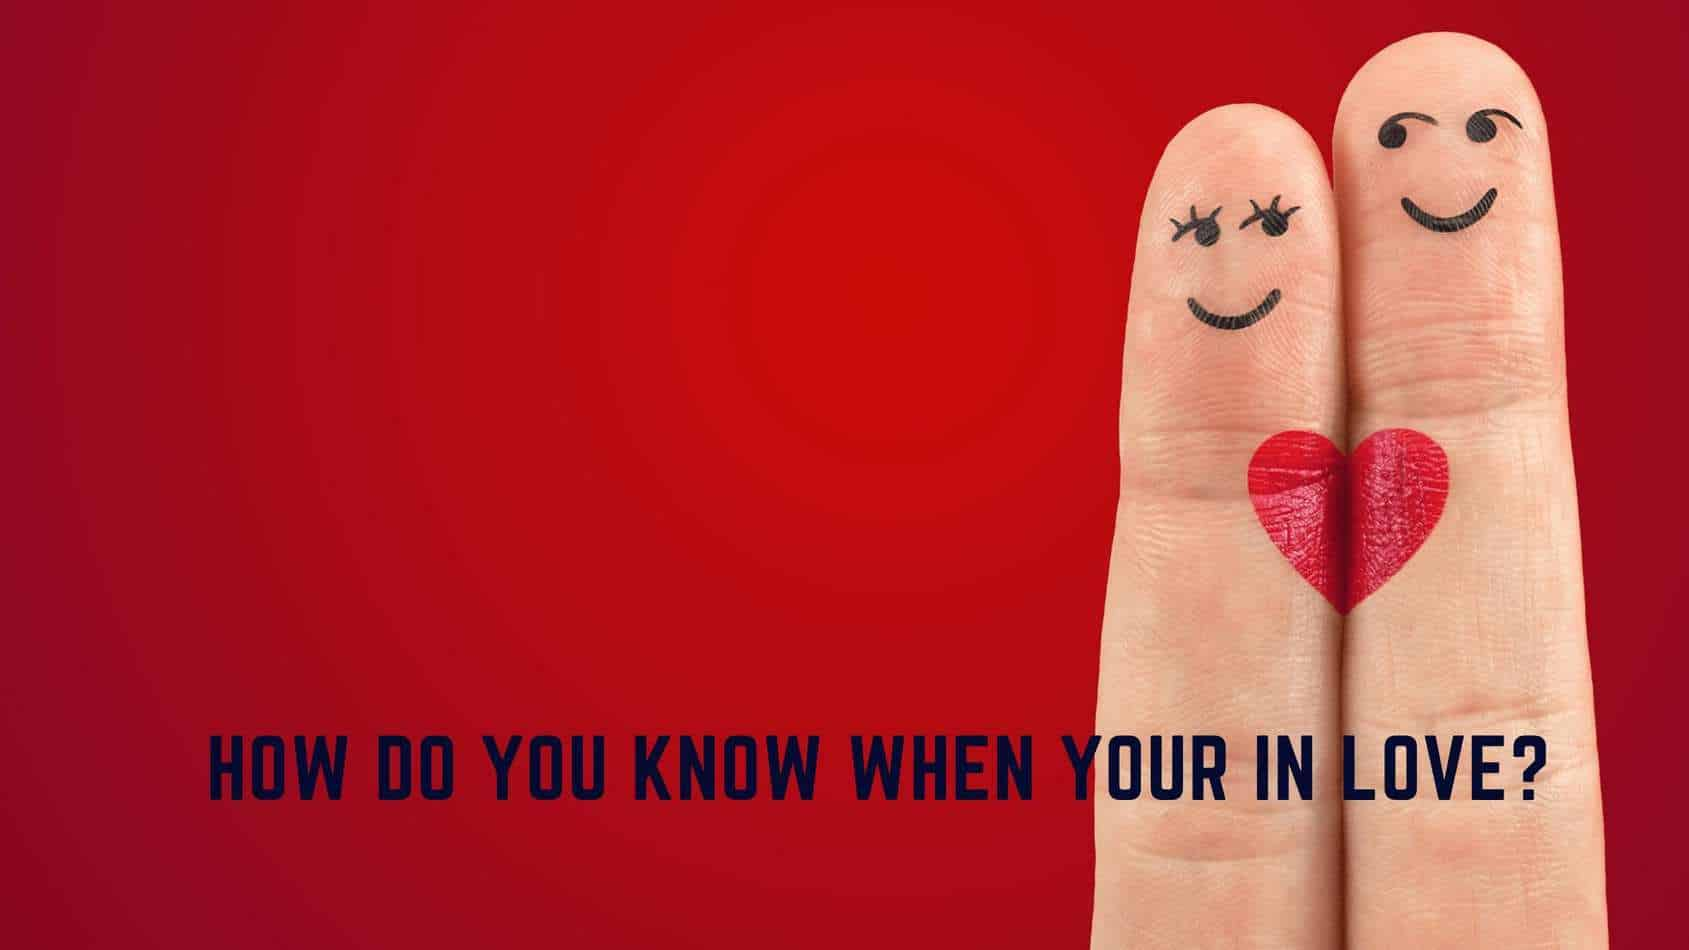 How do you know when your in love?